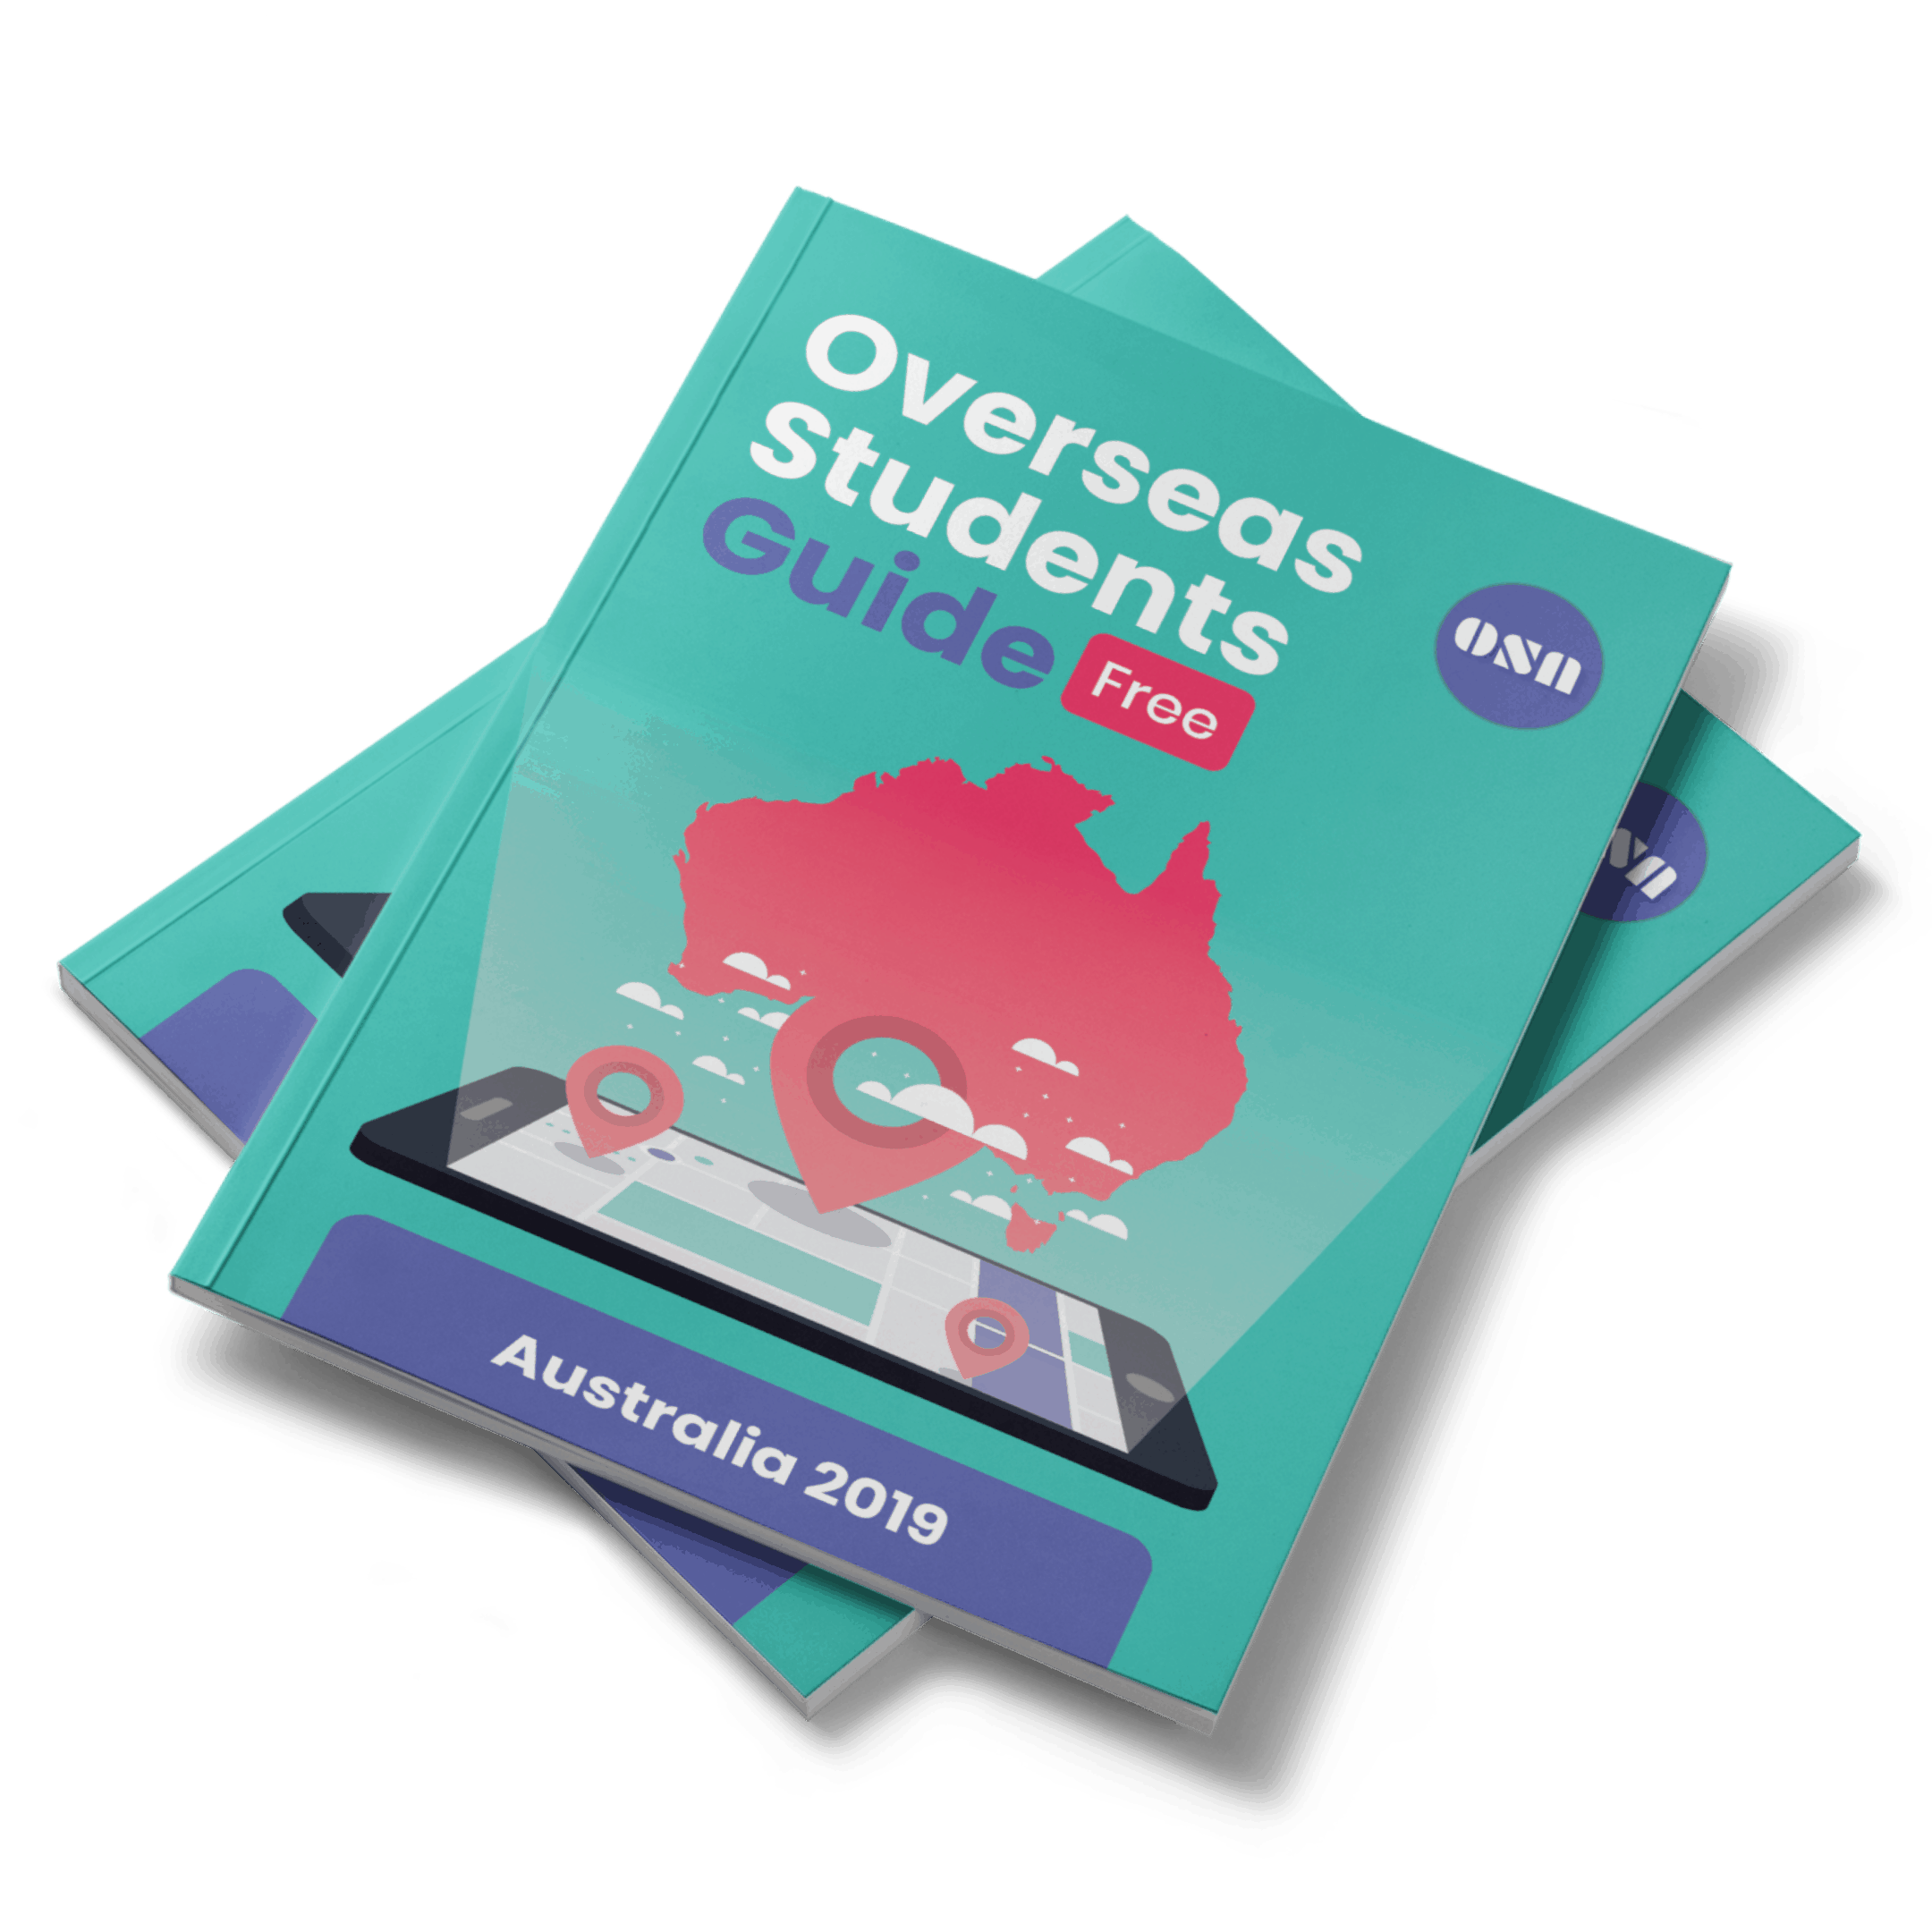 Overseas Students Guide 2019 Cover